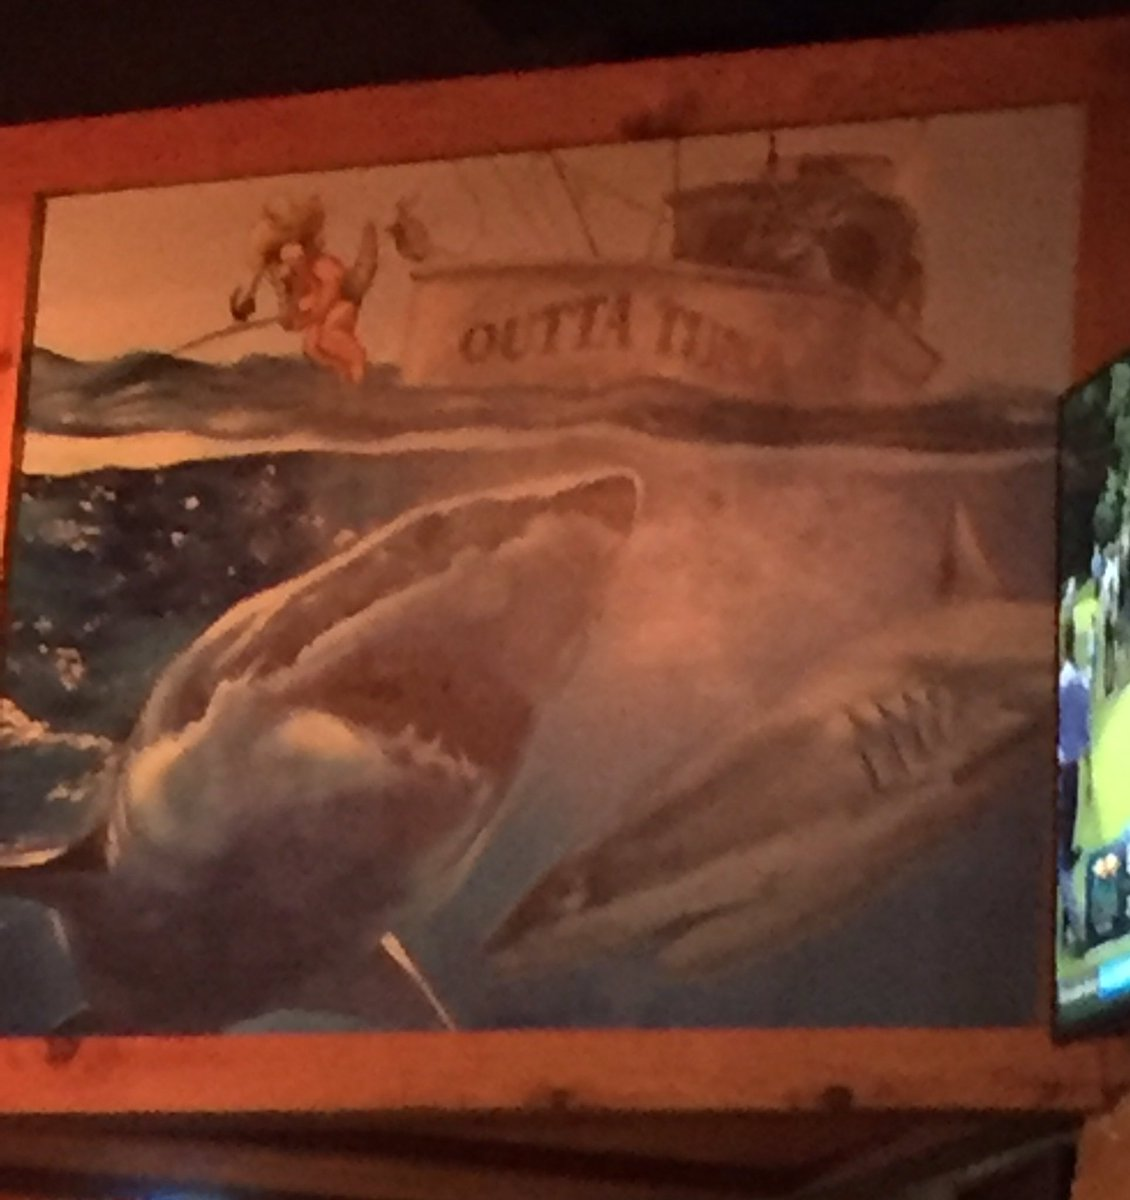 .@MaryLeeShark is this you at @texasroadhouse @OCEARCH https://t.co/TA0tpXHWc4